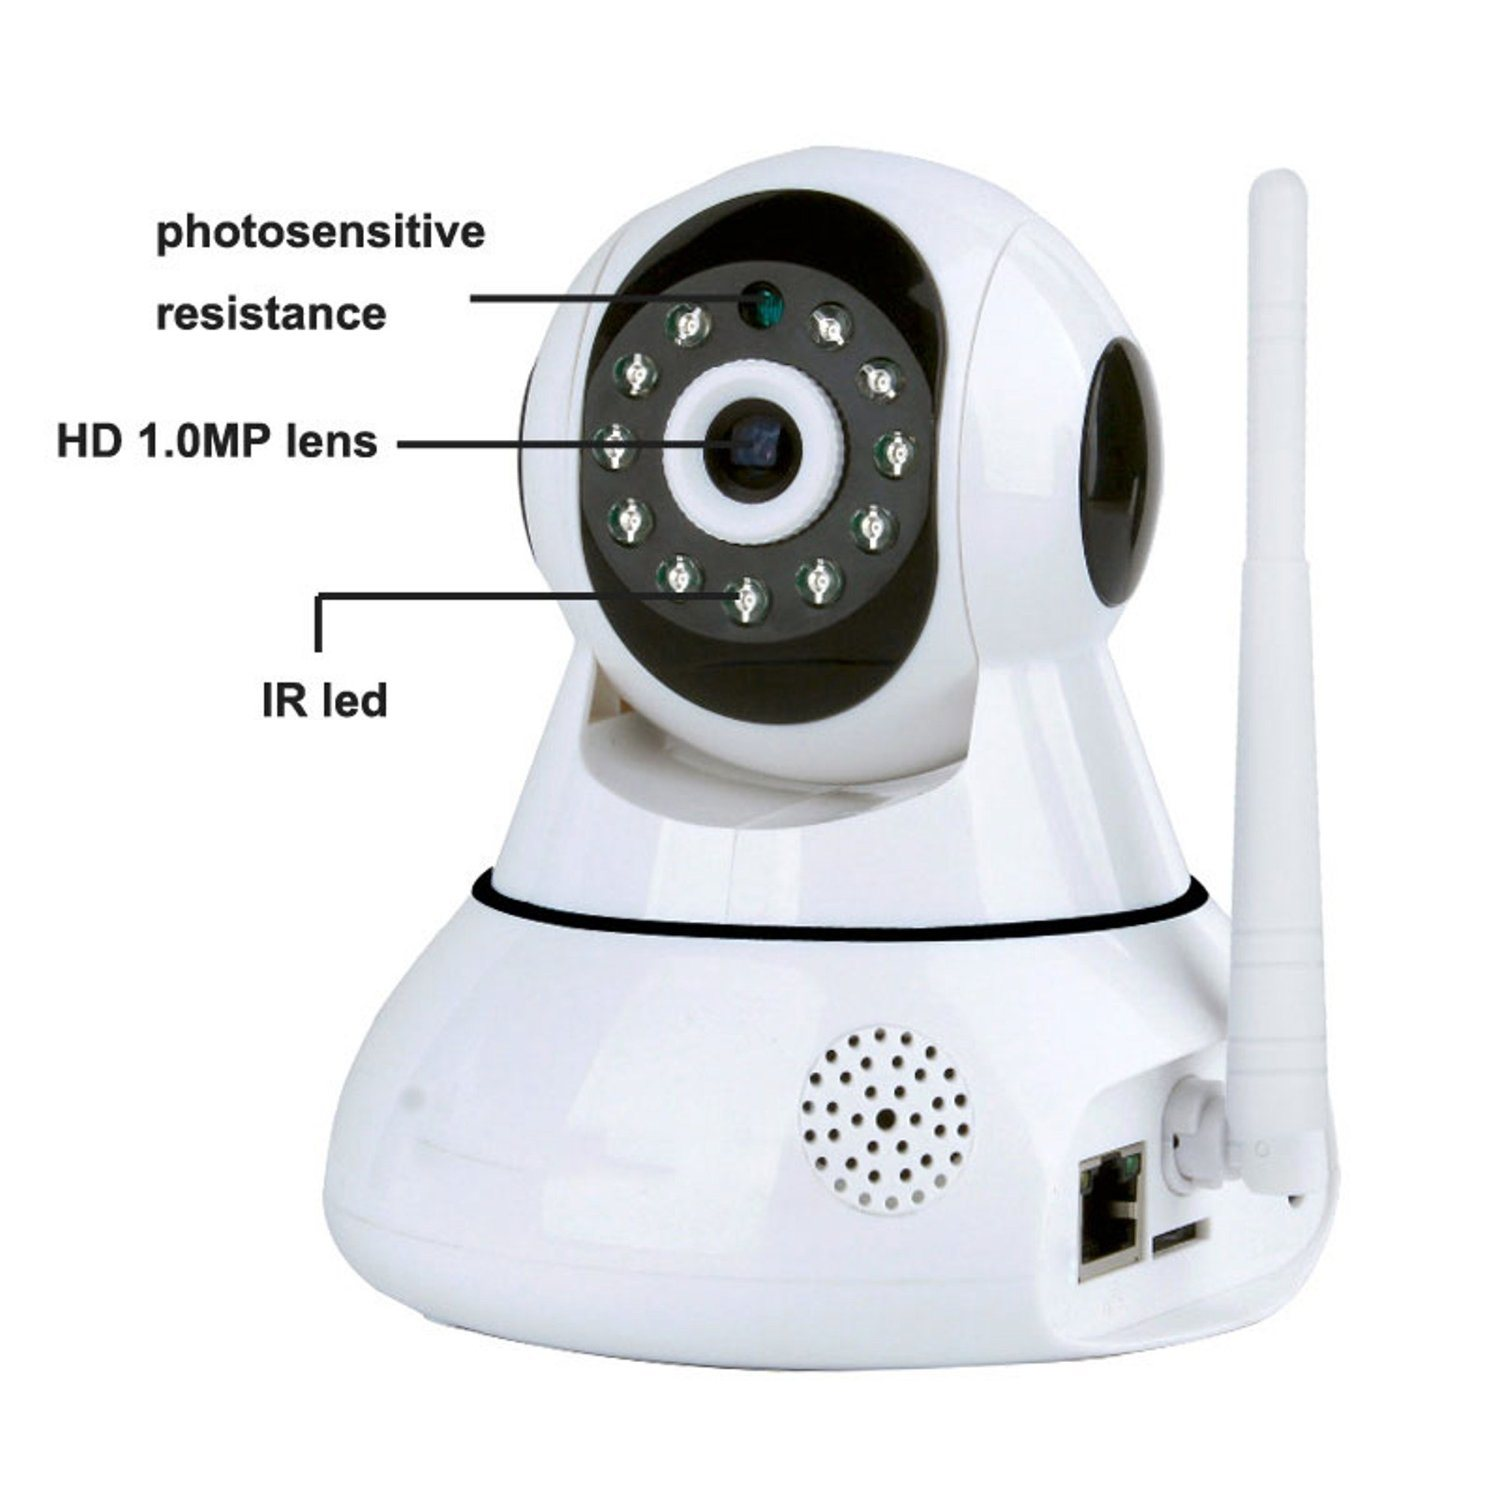 WiFi Wireless IP Security Camera, Plug and Play Home Surveillance Camera, Baby Pet Monitor